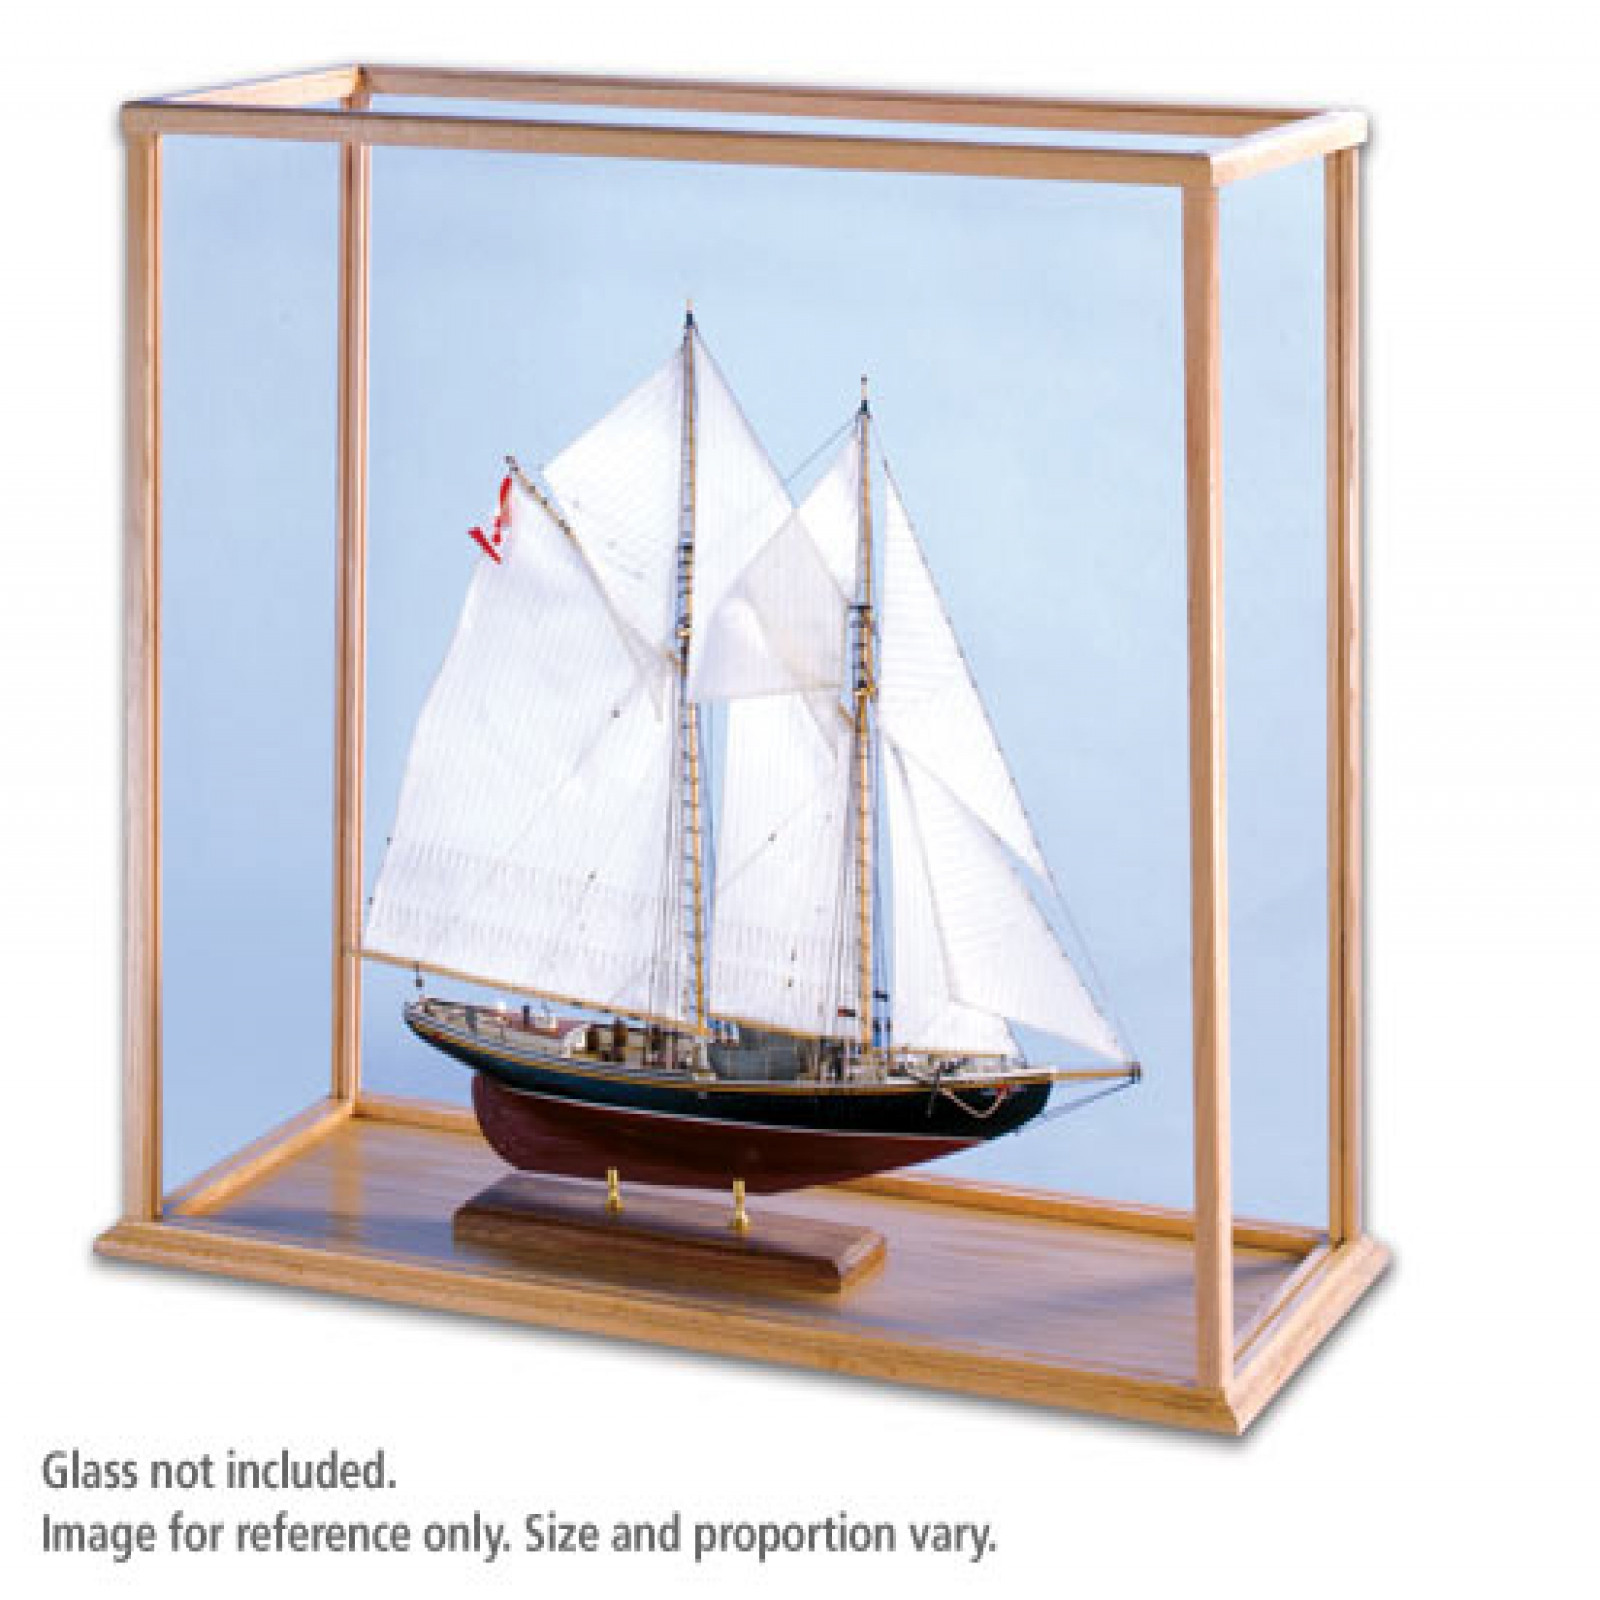 OAK SHIP MODEL CASE L:38 W:13-1/2 H:28  KIT